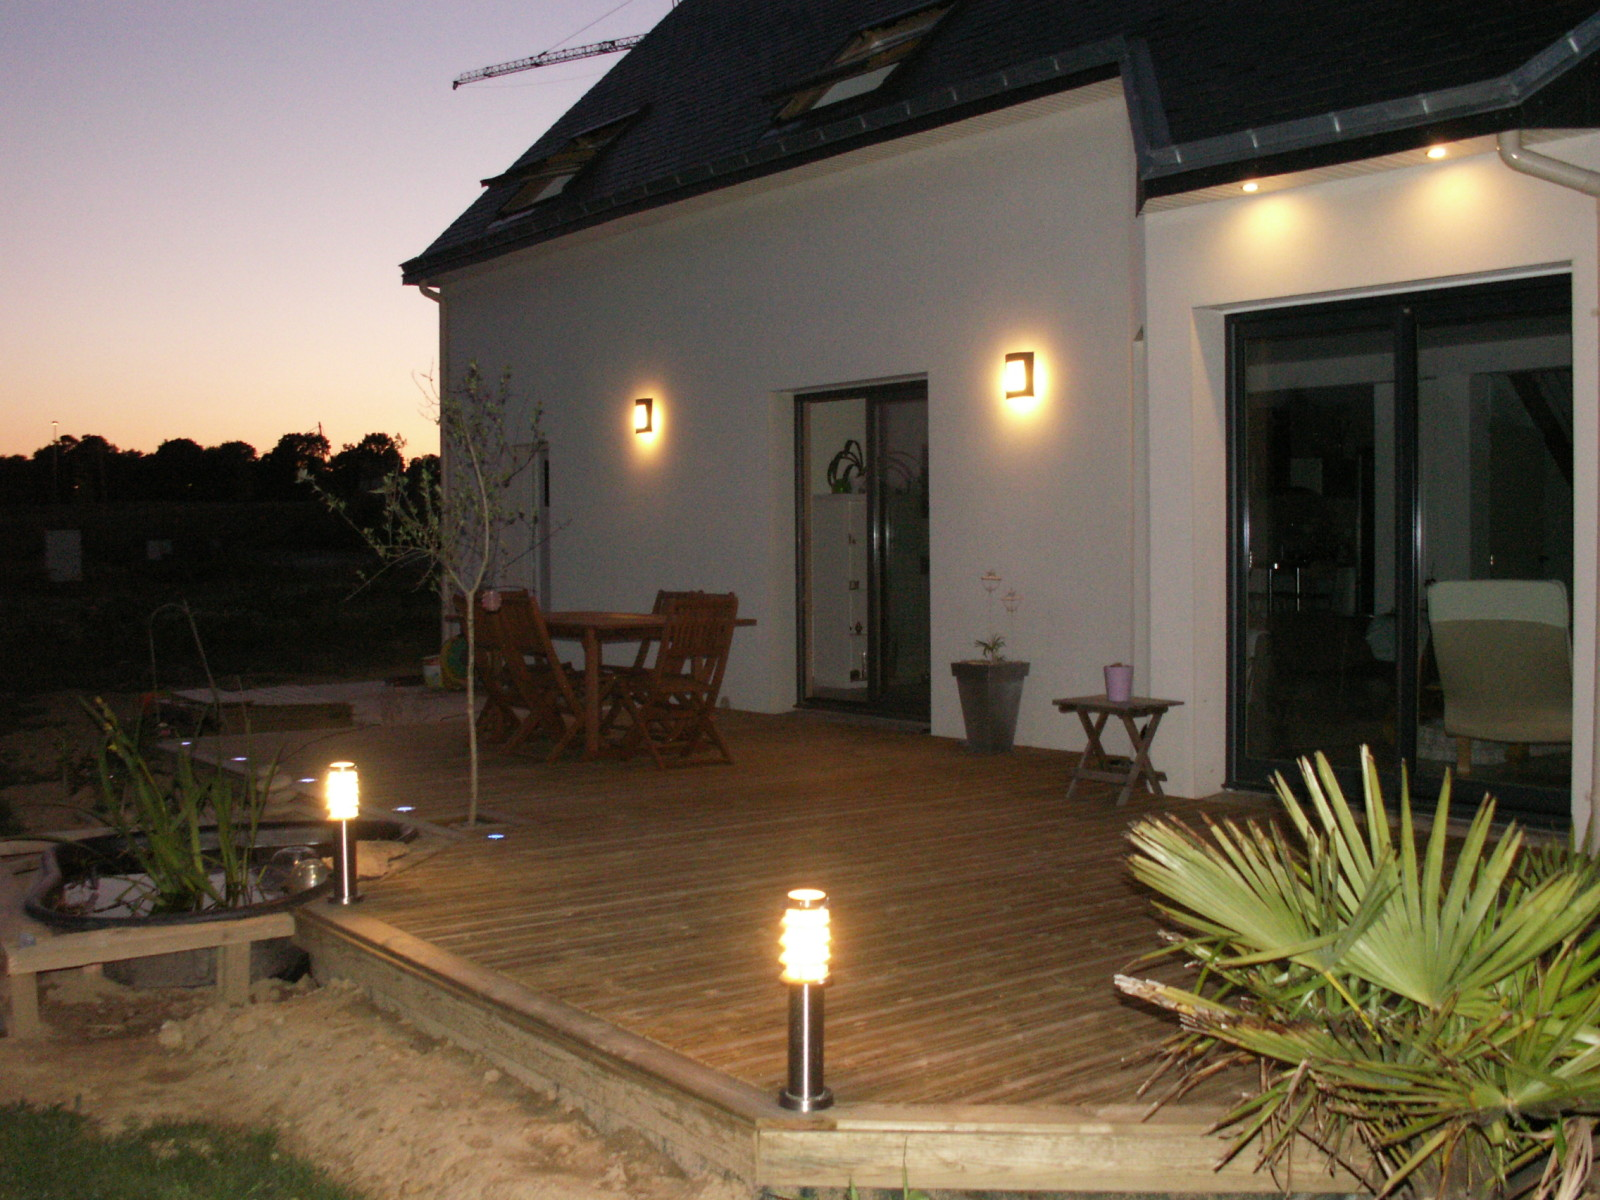 Clairage terrasse eclairage ext rieur for Eclairage exterieur led terrasse